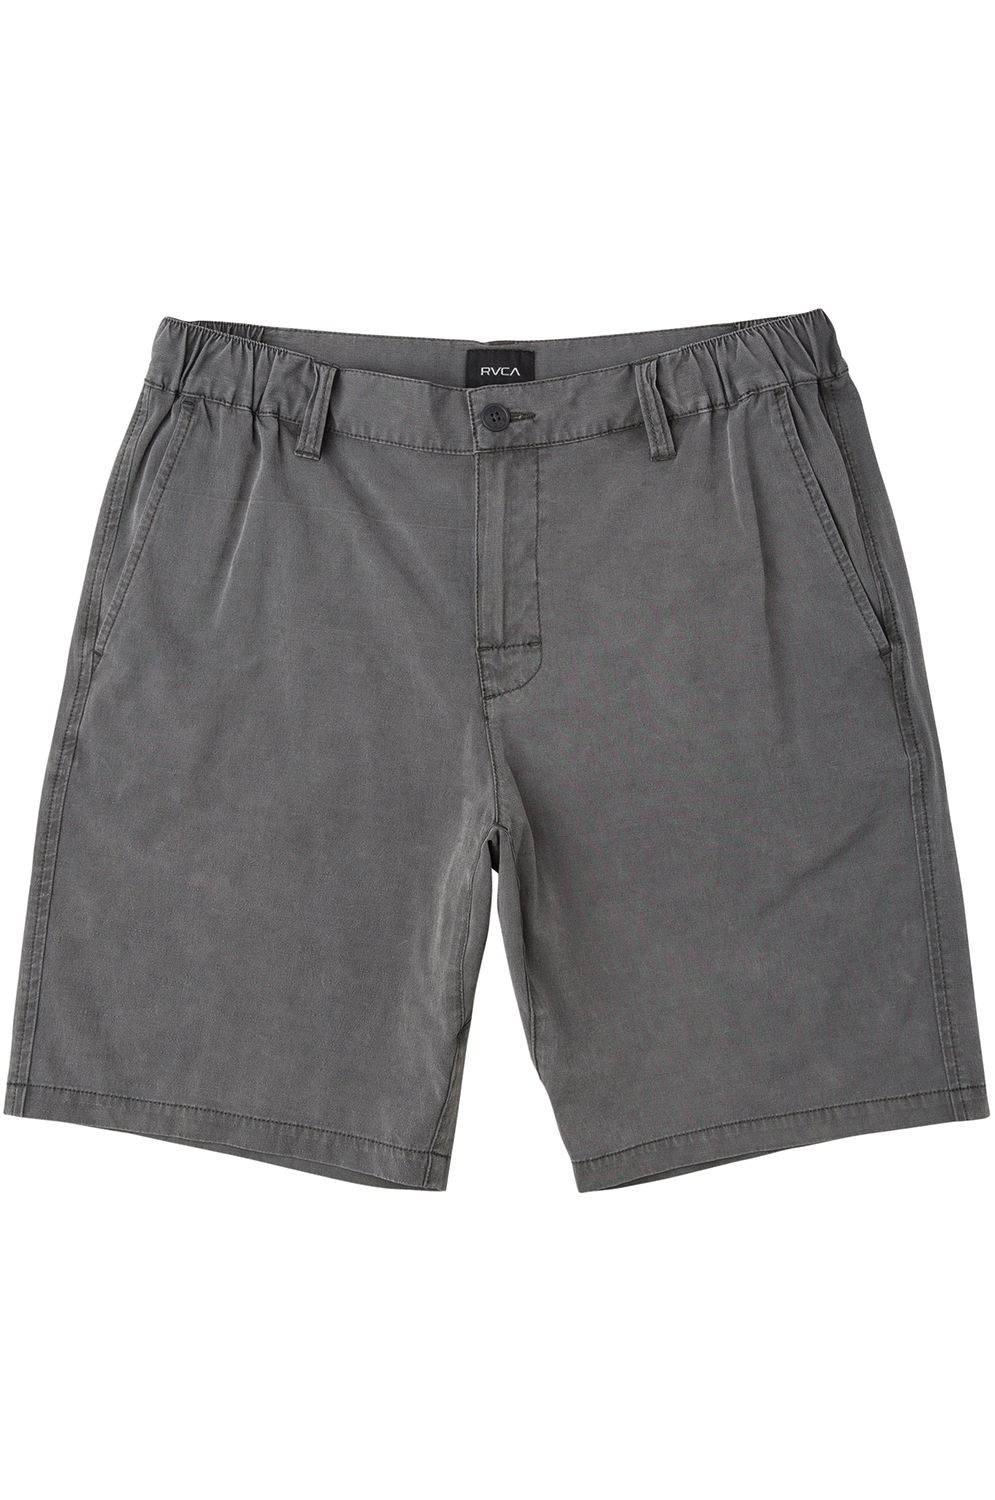 HydroWalkShorts RVCA ALL TIME COASTAL RIN ALL TIME COLLECTION Pirate Black